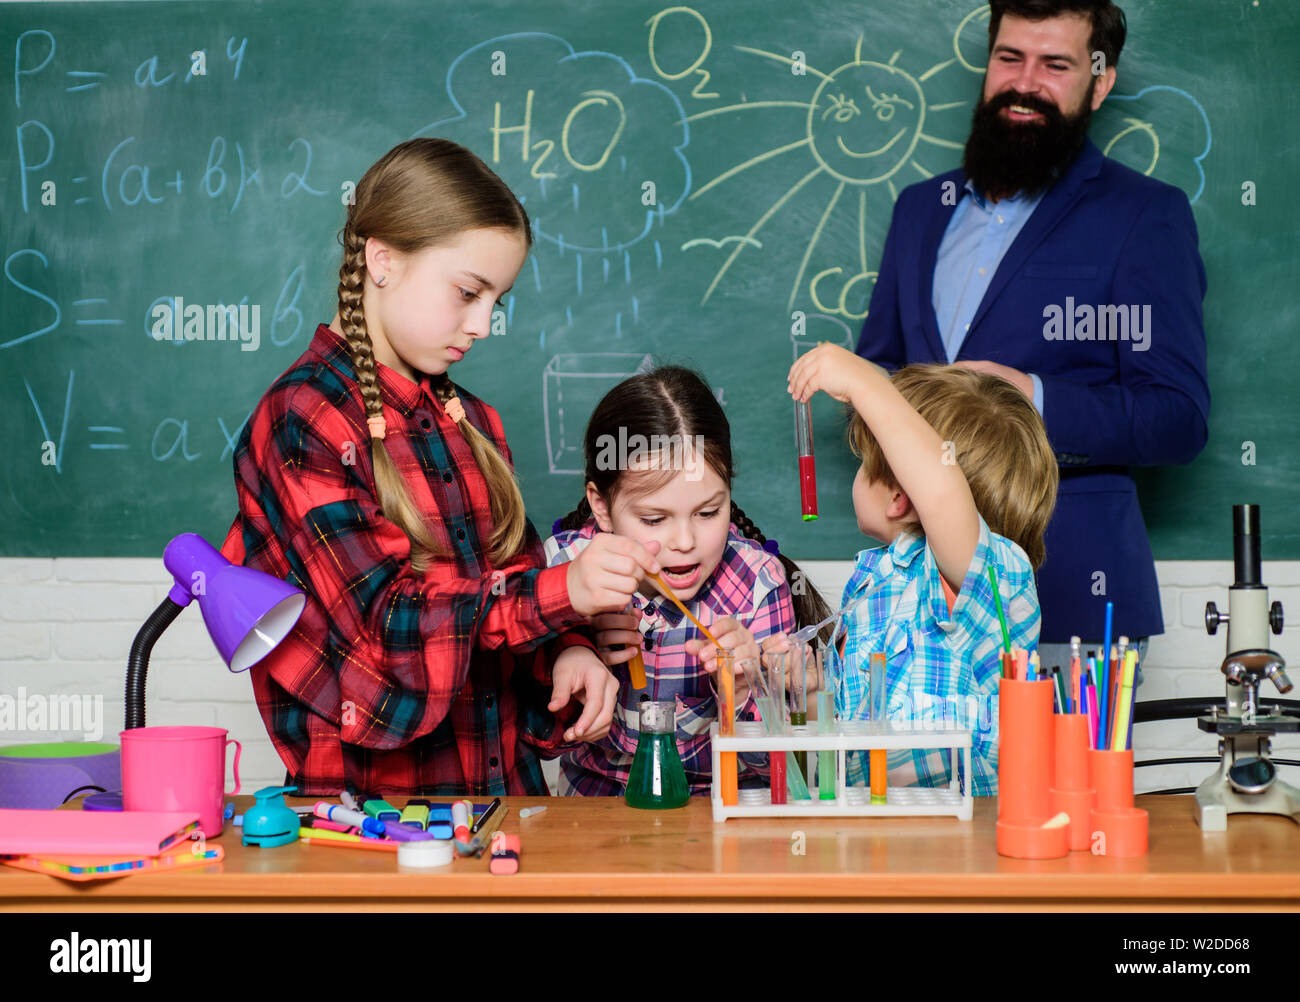 Learning is integrated. With experience comes knowledge. Formal education. Group interaction communication. Practical knowledge. Elementary basic knowledge. Study with friends is fun. Control process. - Stock Image